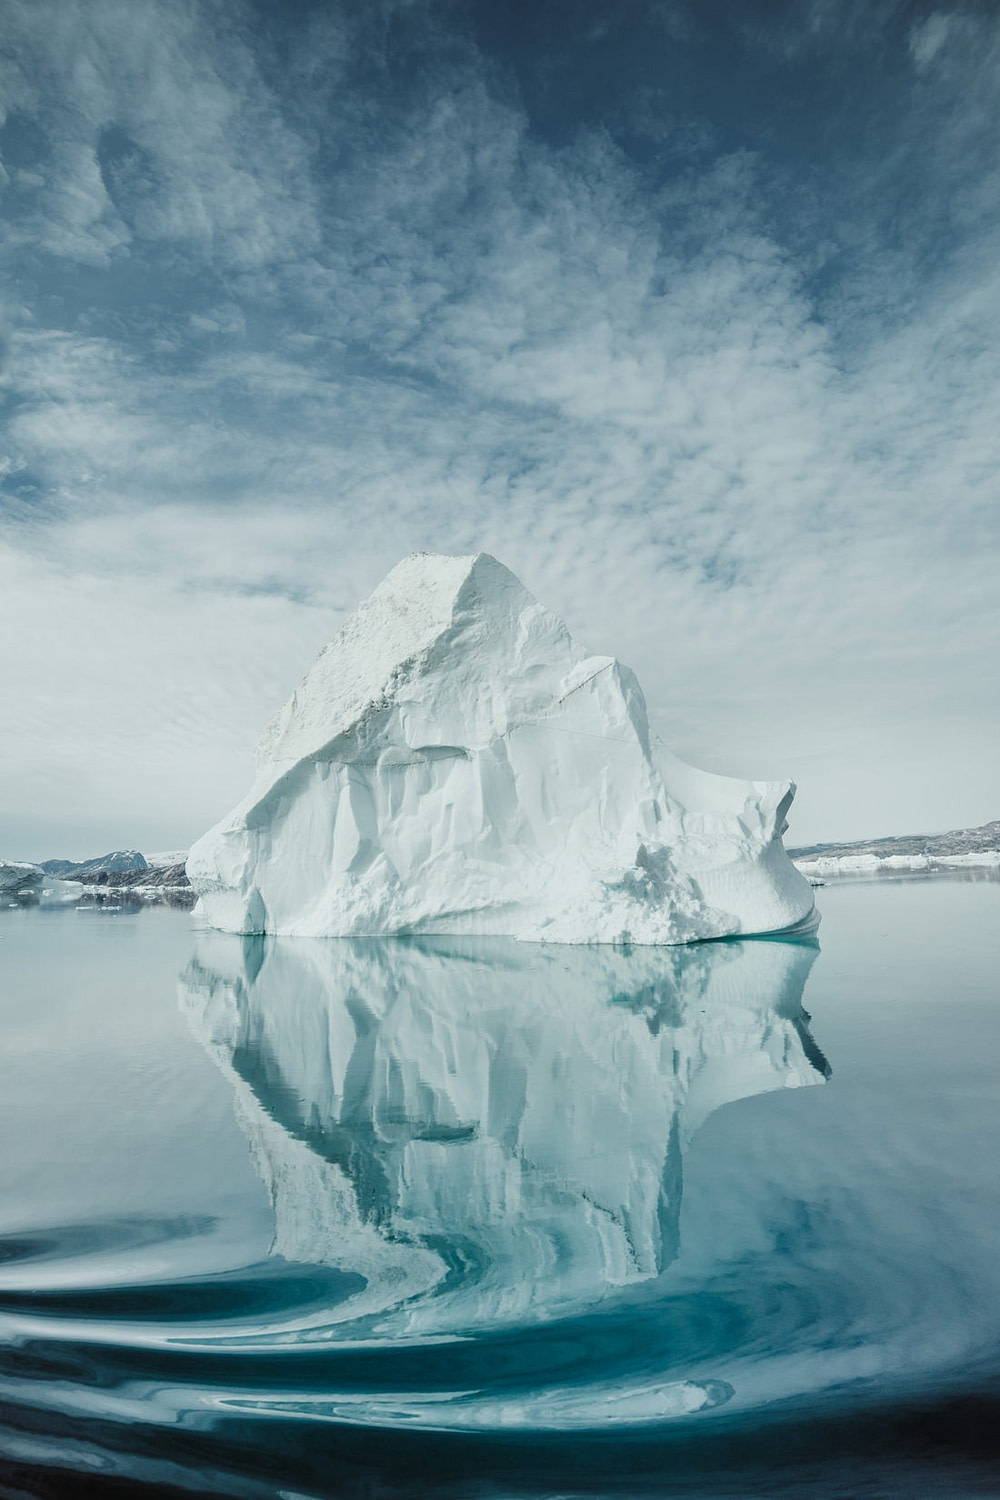 038 greenland arctic sailing expedition - Segel Expedition in Ost-Grönland 2/3